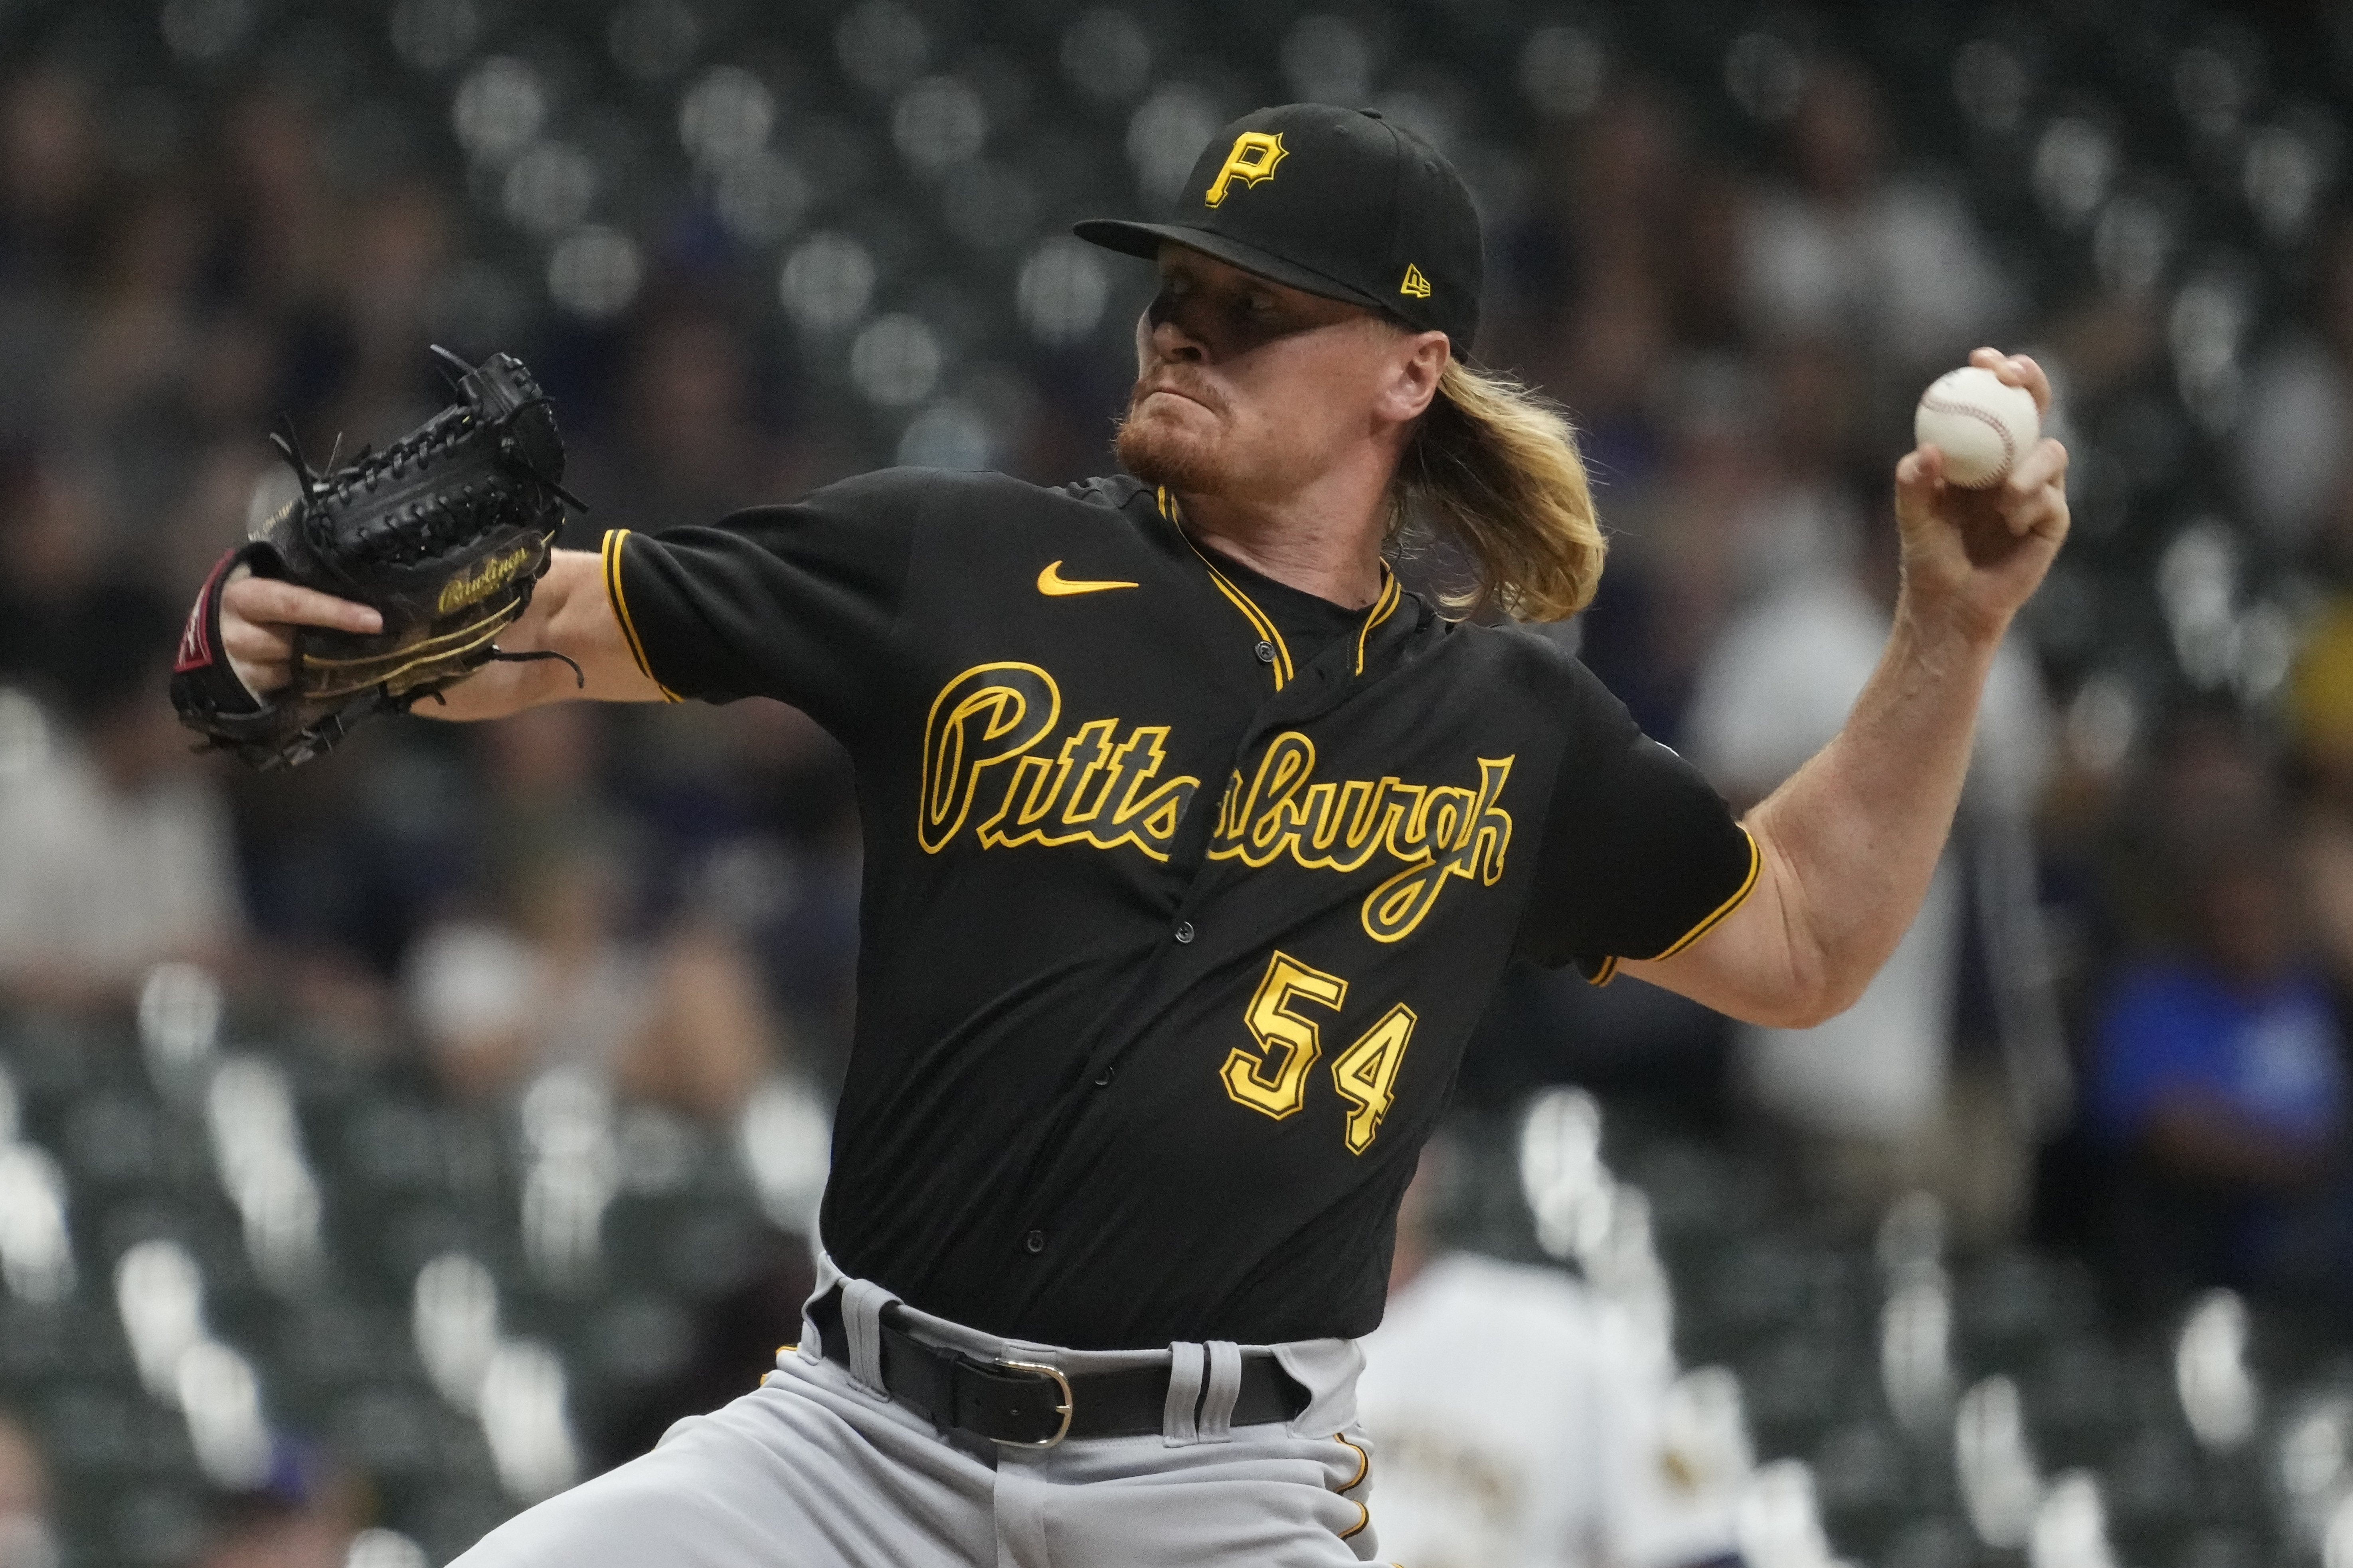 Brewers win 7-4 by capitalizing on Pirates' control problems